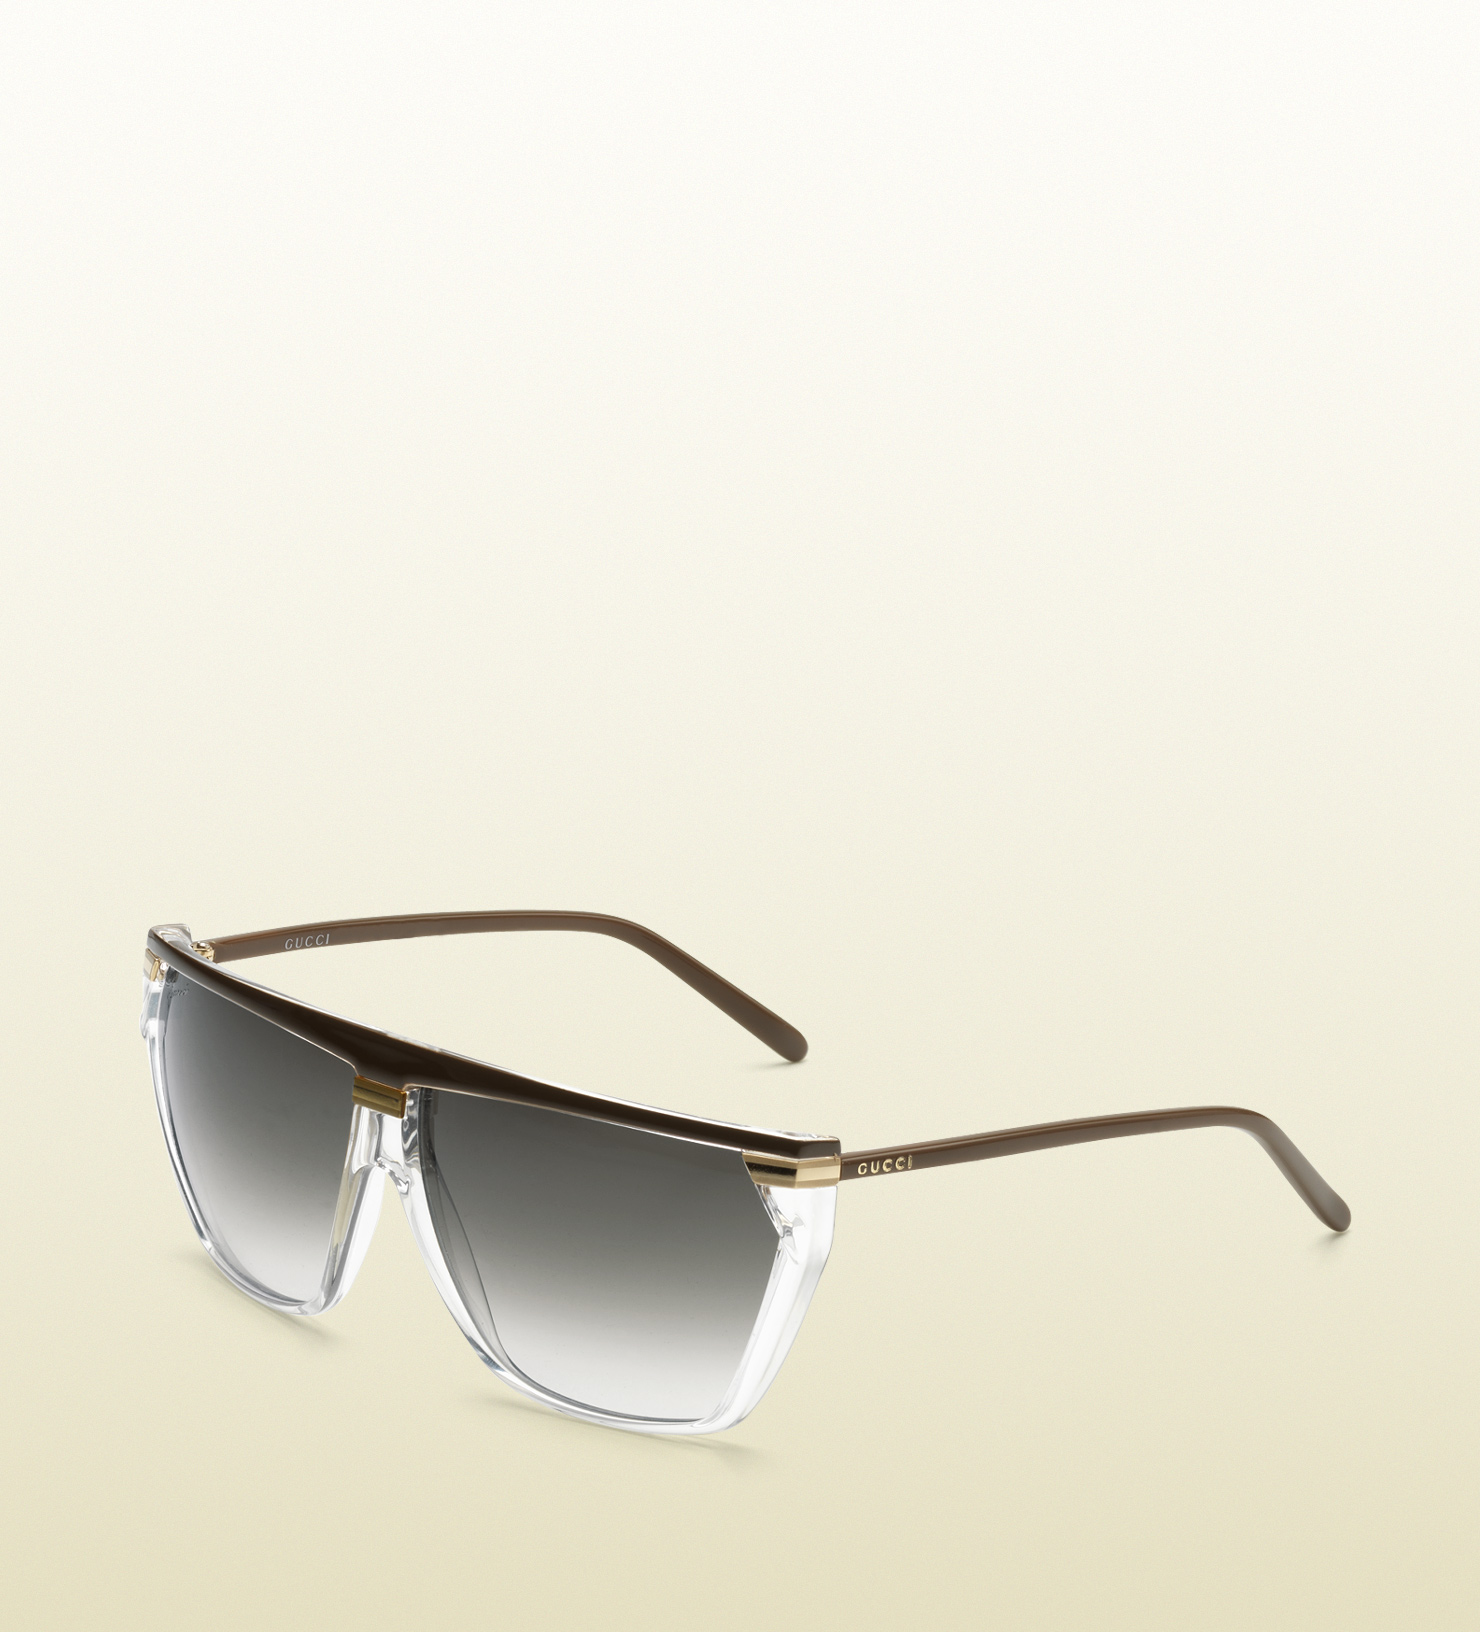 5535bc22435 Lyst - Gucci Medium Rectangle Frame Sunglasses with Gucci Logo On Temples in  Black